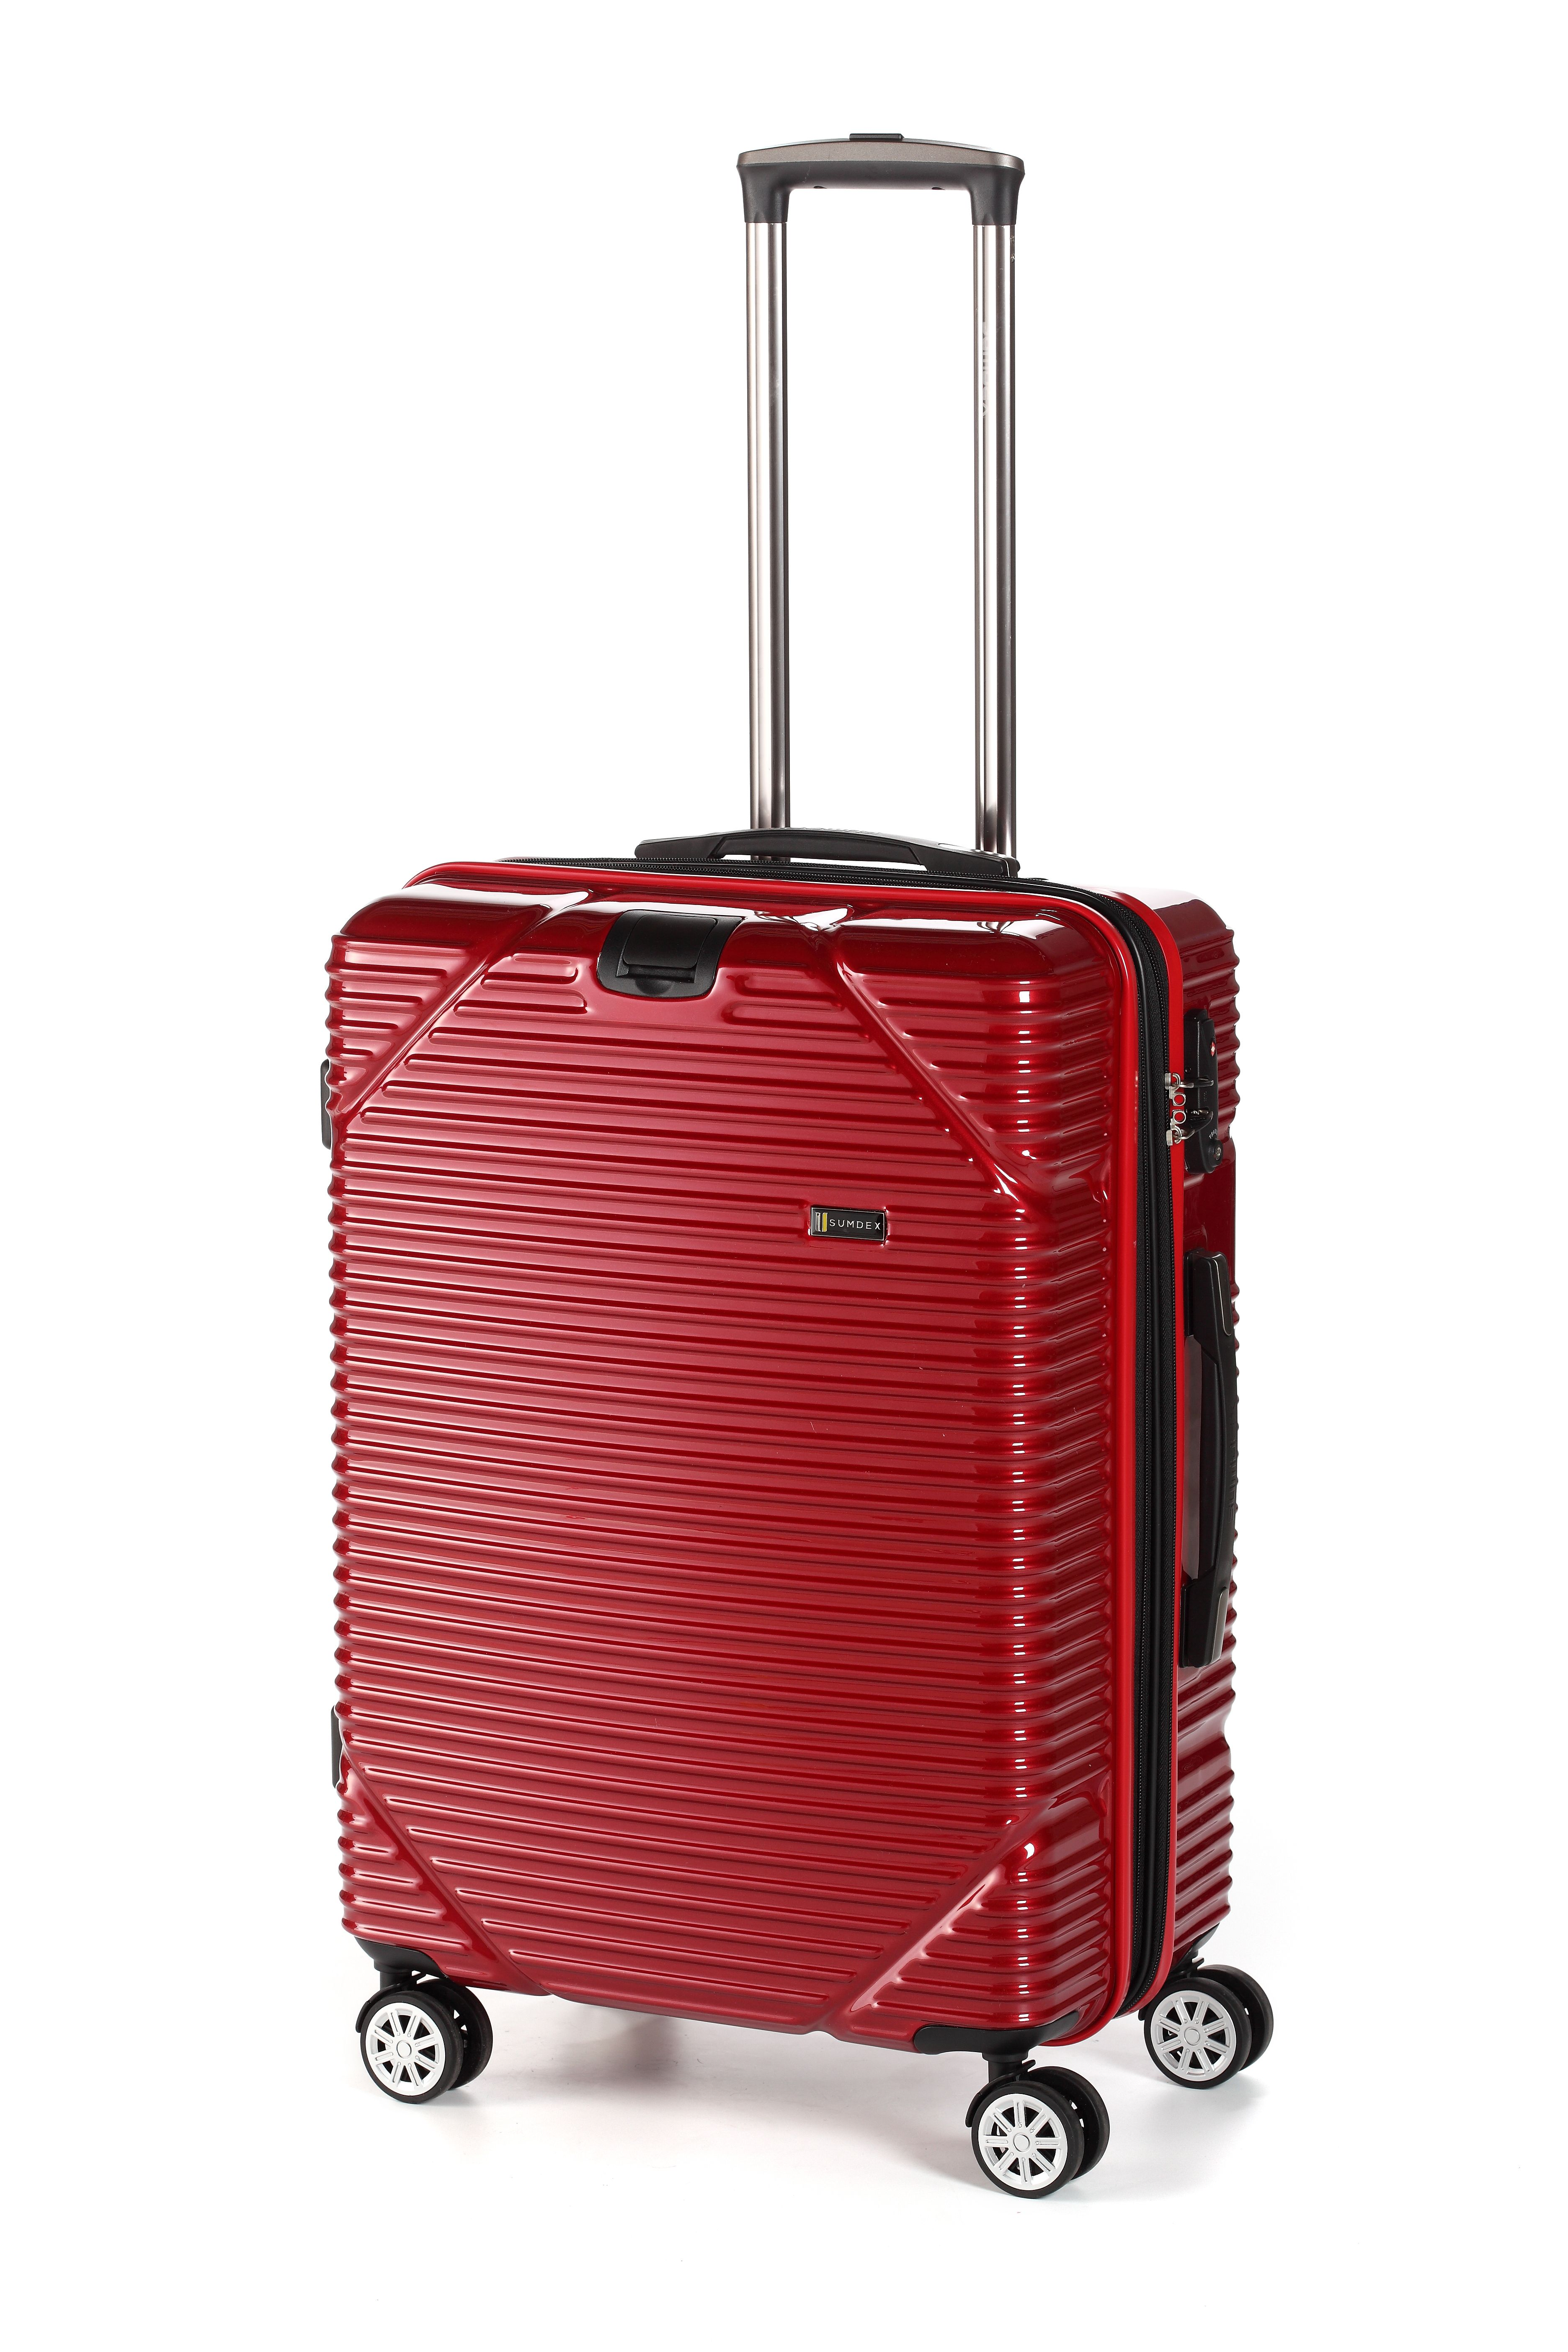 Pin By Joice On Paradise In 2020 Luggage Hardside Luggage Spinner Luggage Sets